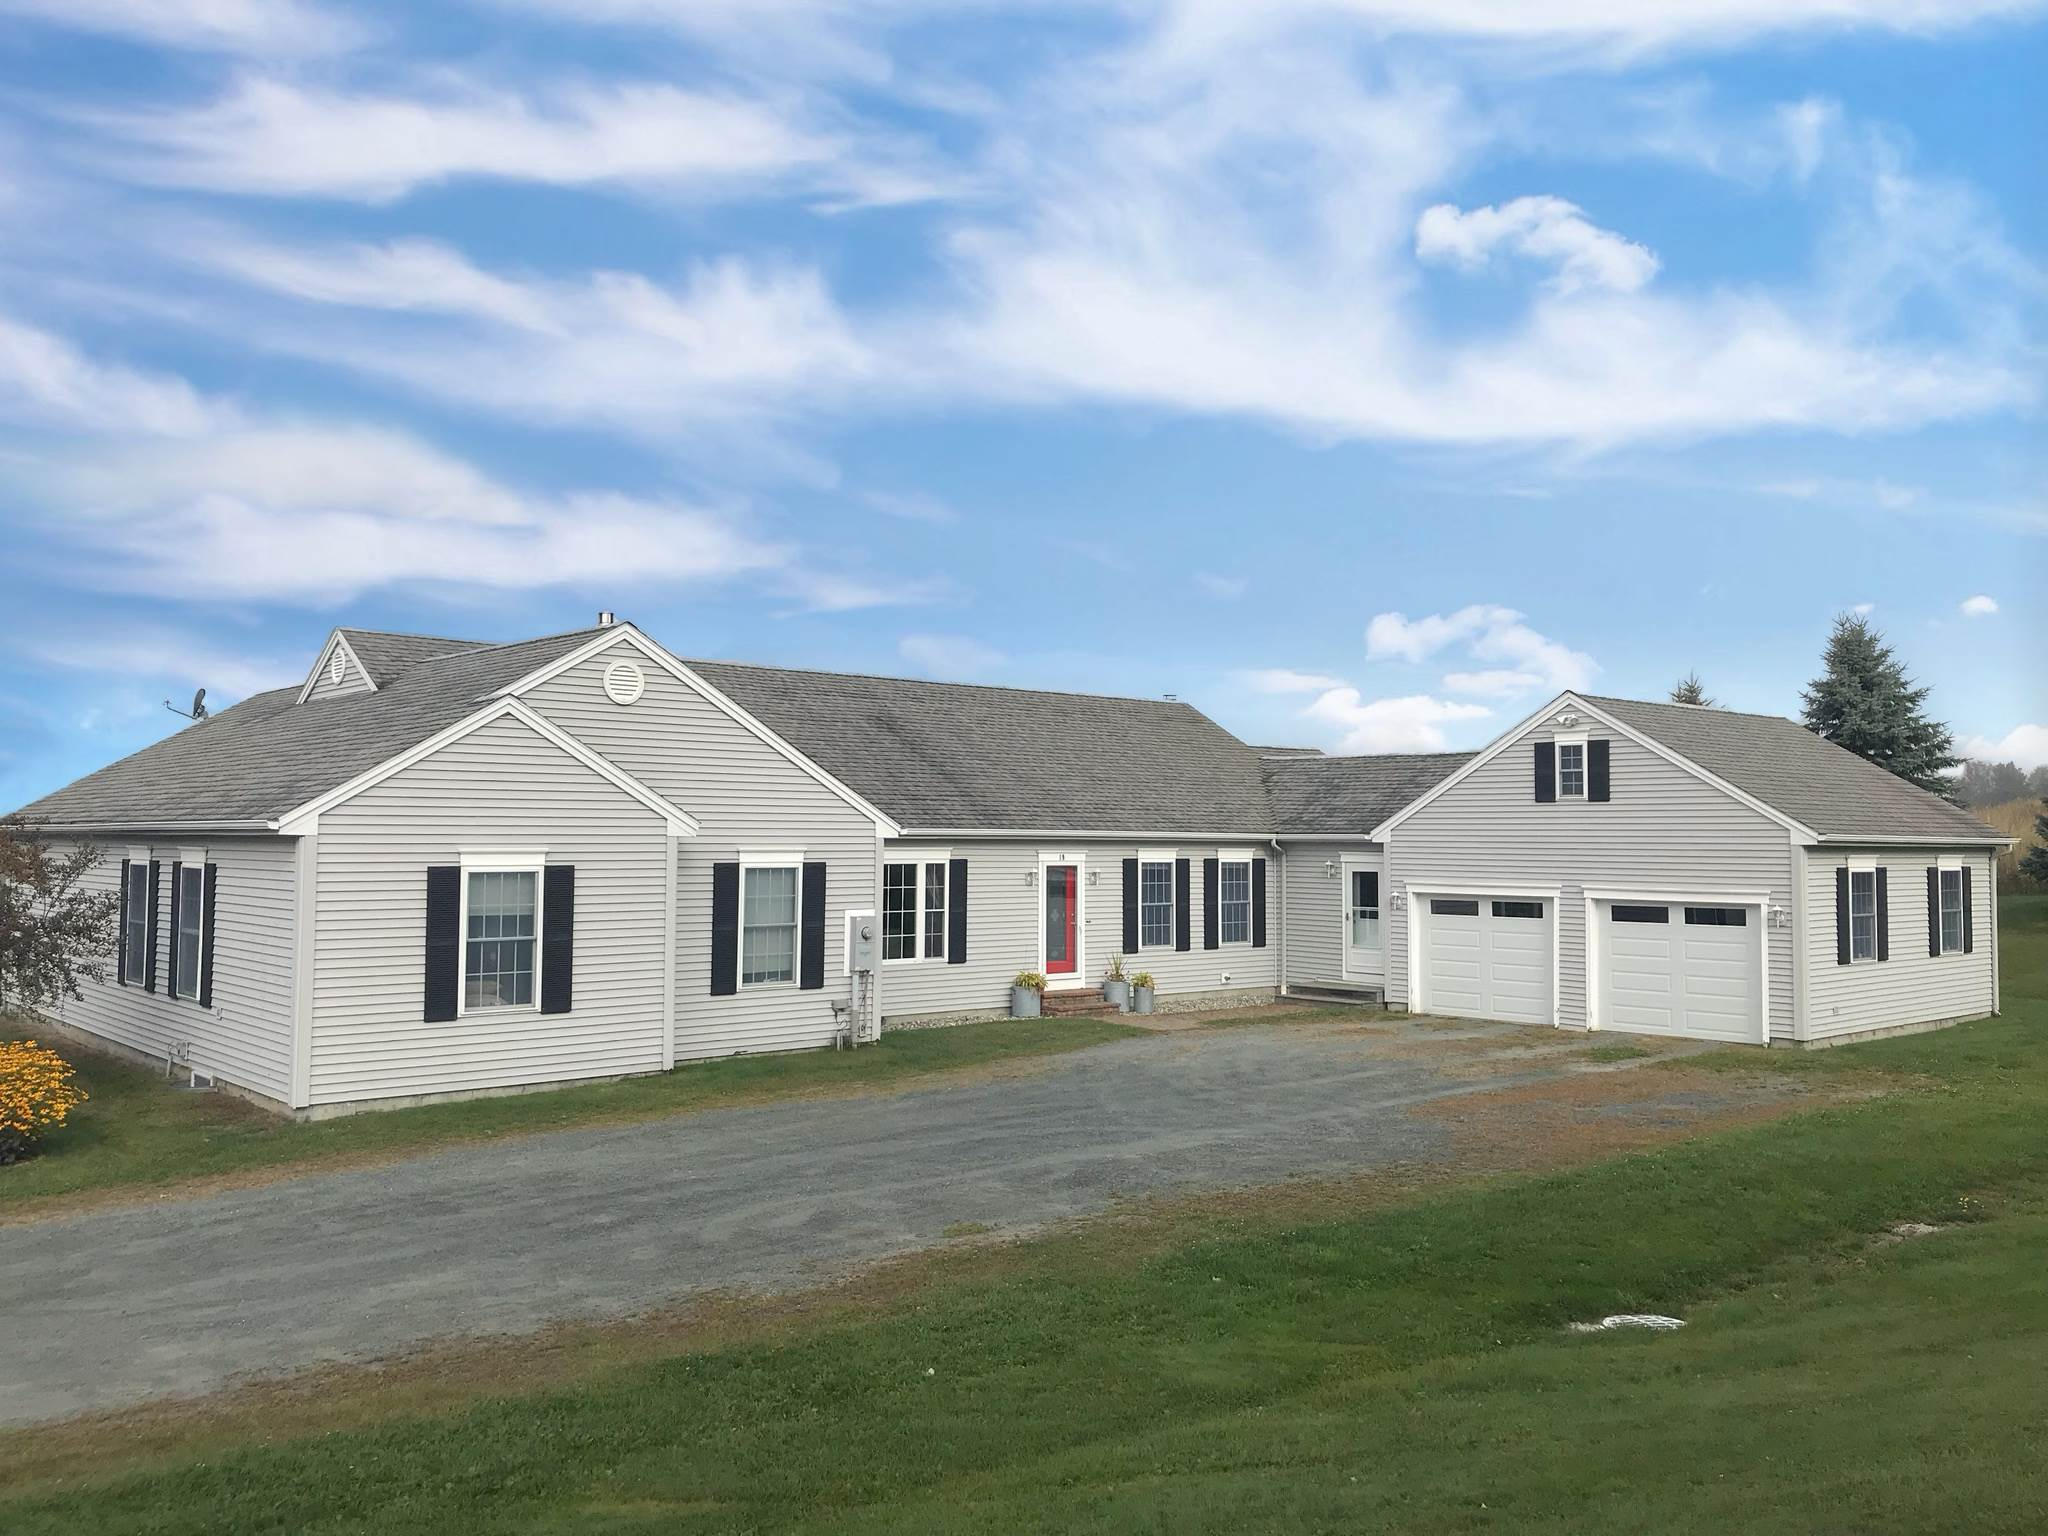 MLS 4794890: 19 Eagle Ridge Drive, Lebanon NH